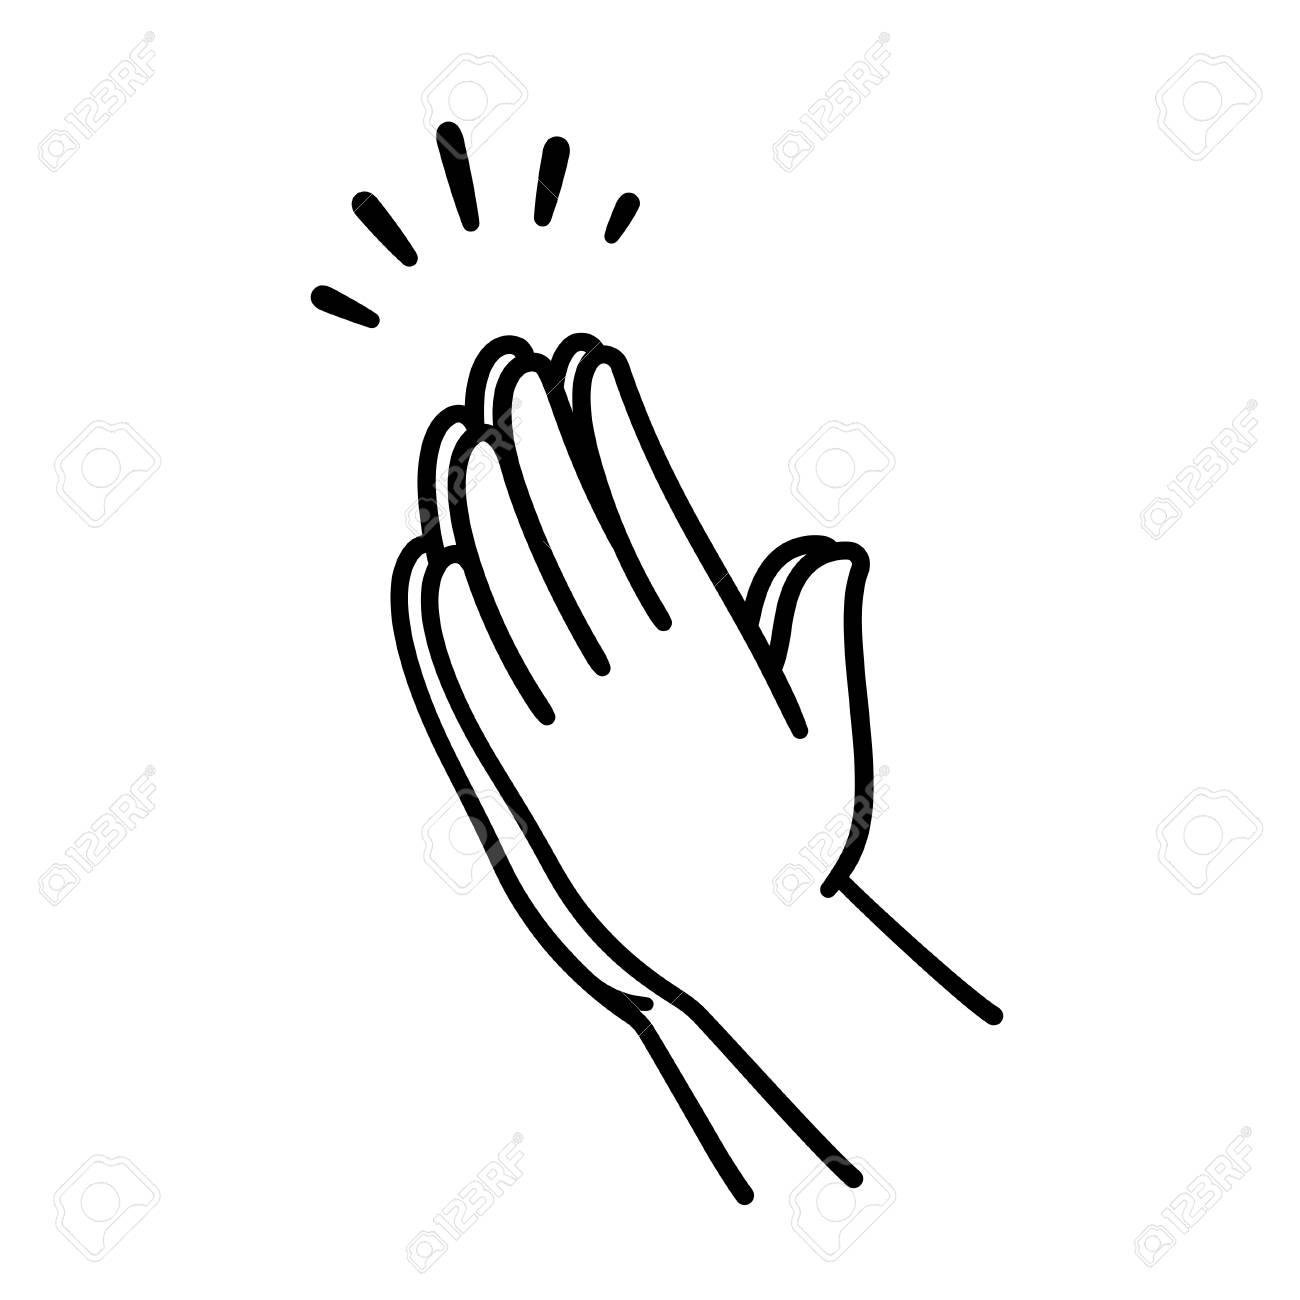 Praying hands drawing, simple line icon illustration  Hands folded